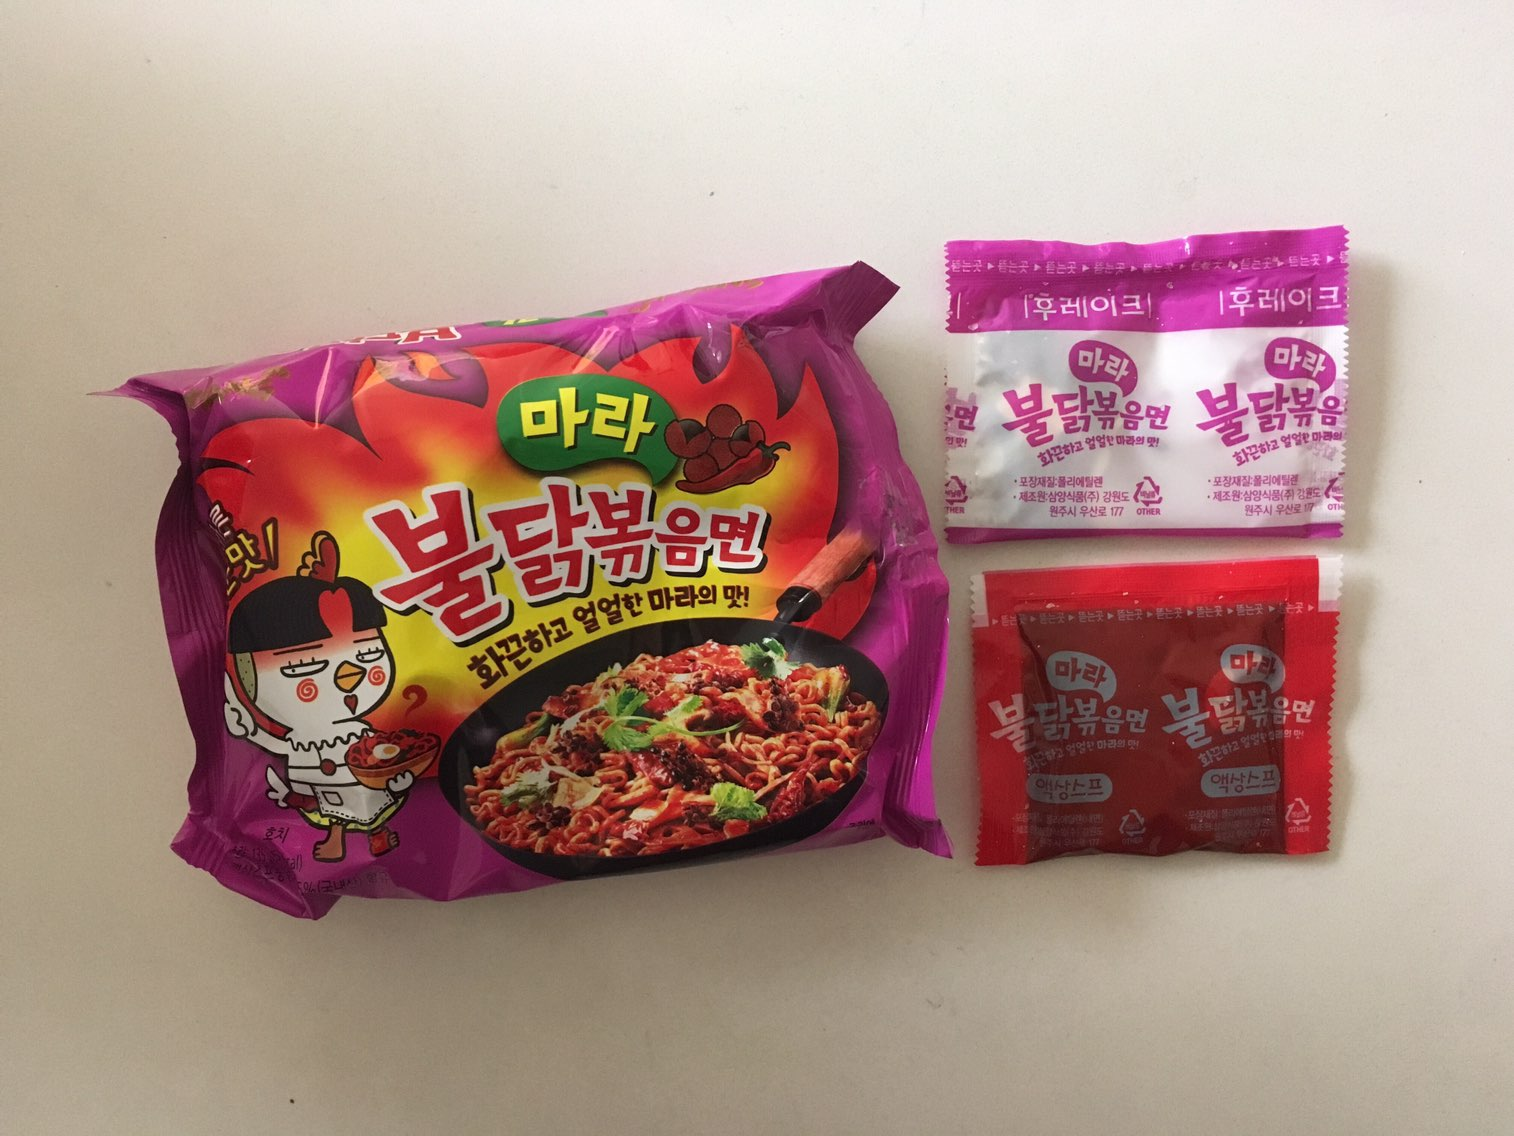 9 Pedas Gila Samyang Noodle Flavours To Try If Youre Already Jjajang Image From Korea Daily Us